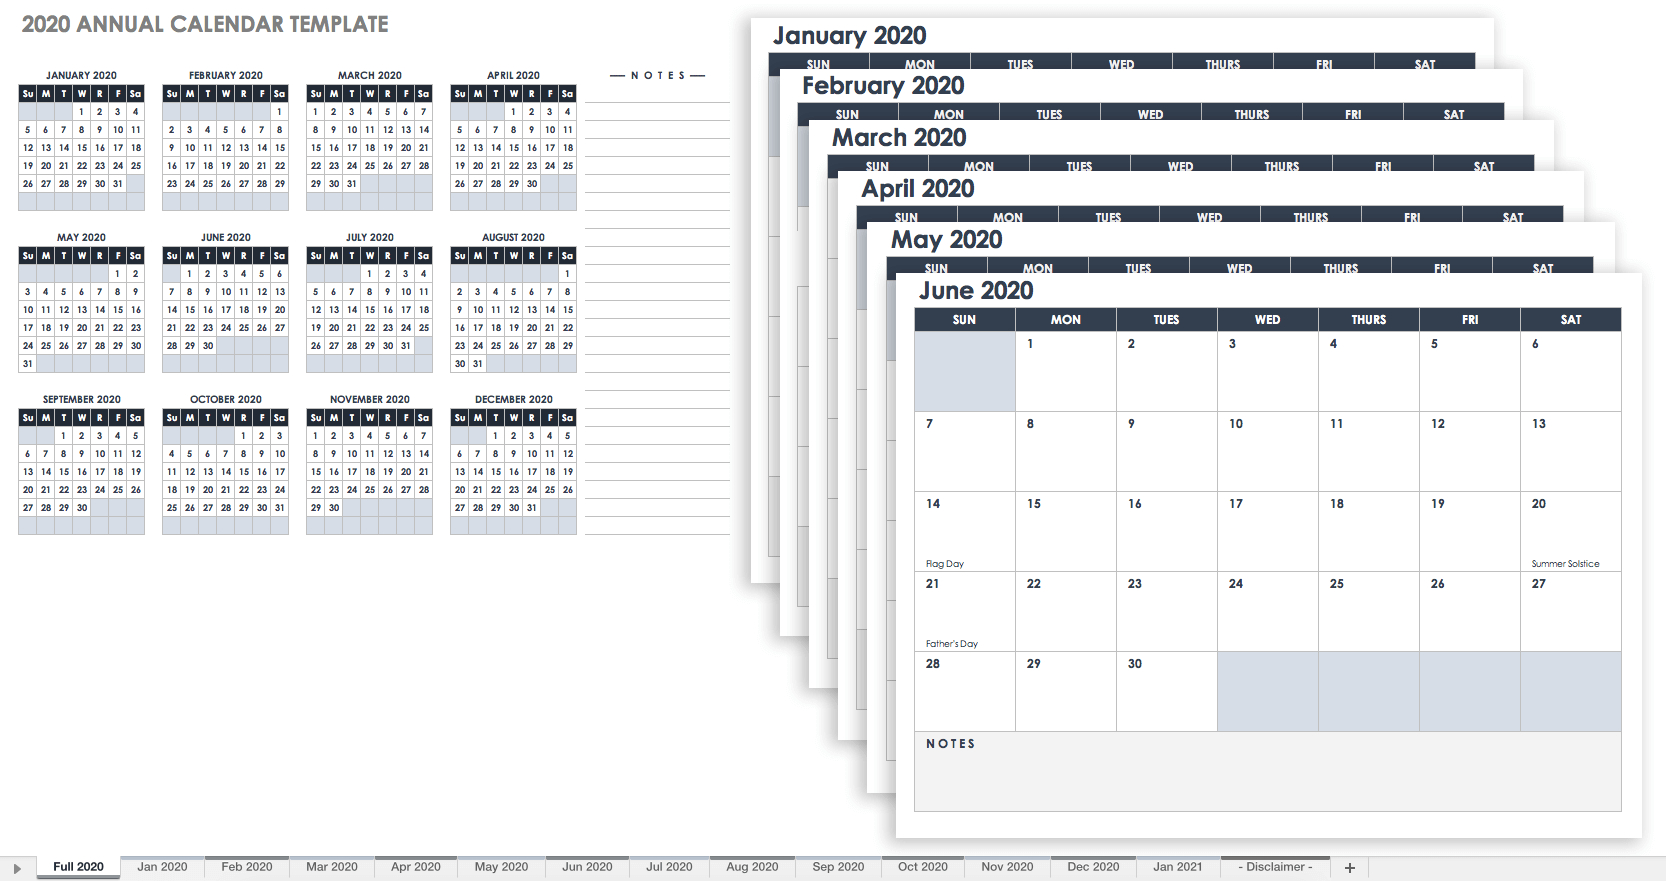 Free, Printable Excel Calendar Templates For 2019 & On | Smartsheet intended for Event Calendar Templates Excel Printable